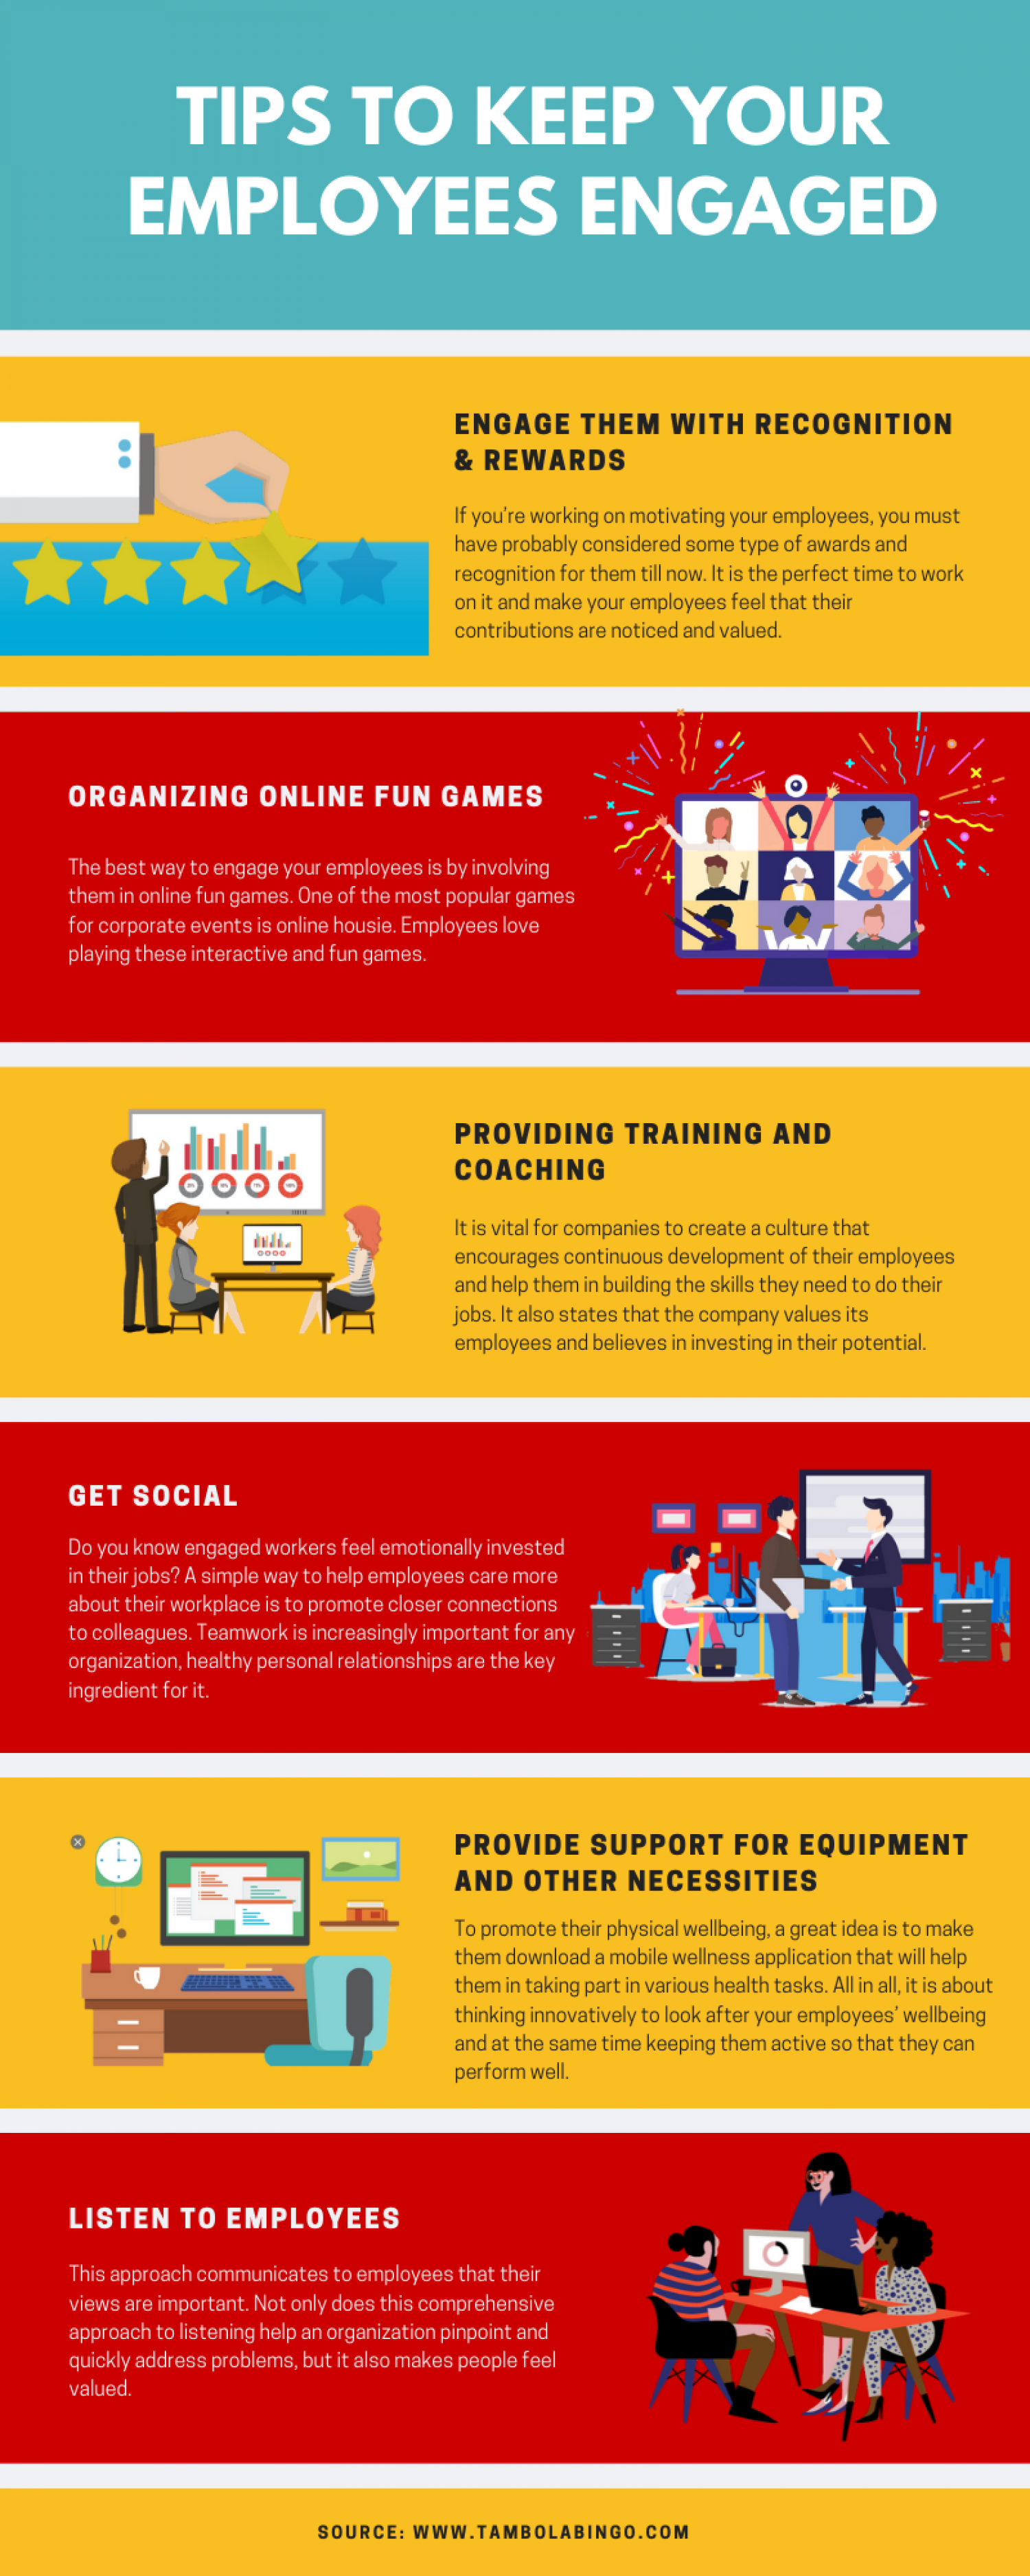 Best Tips for Corporates to Keep Employees Engaged Infographic